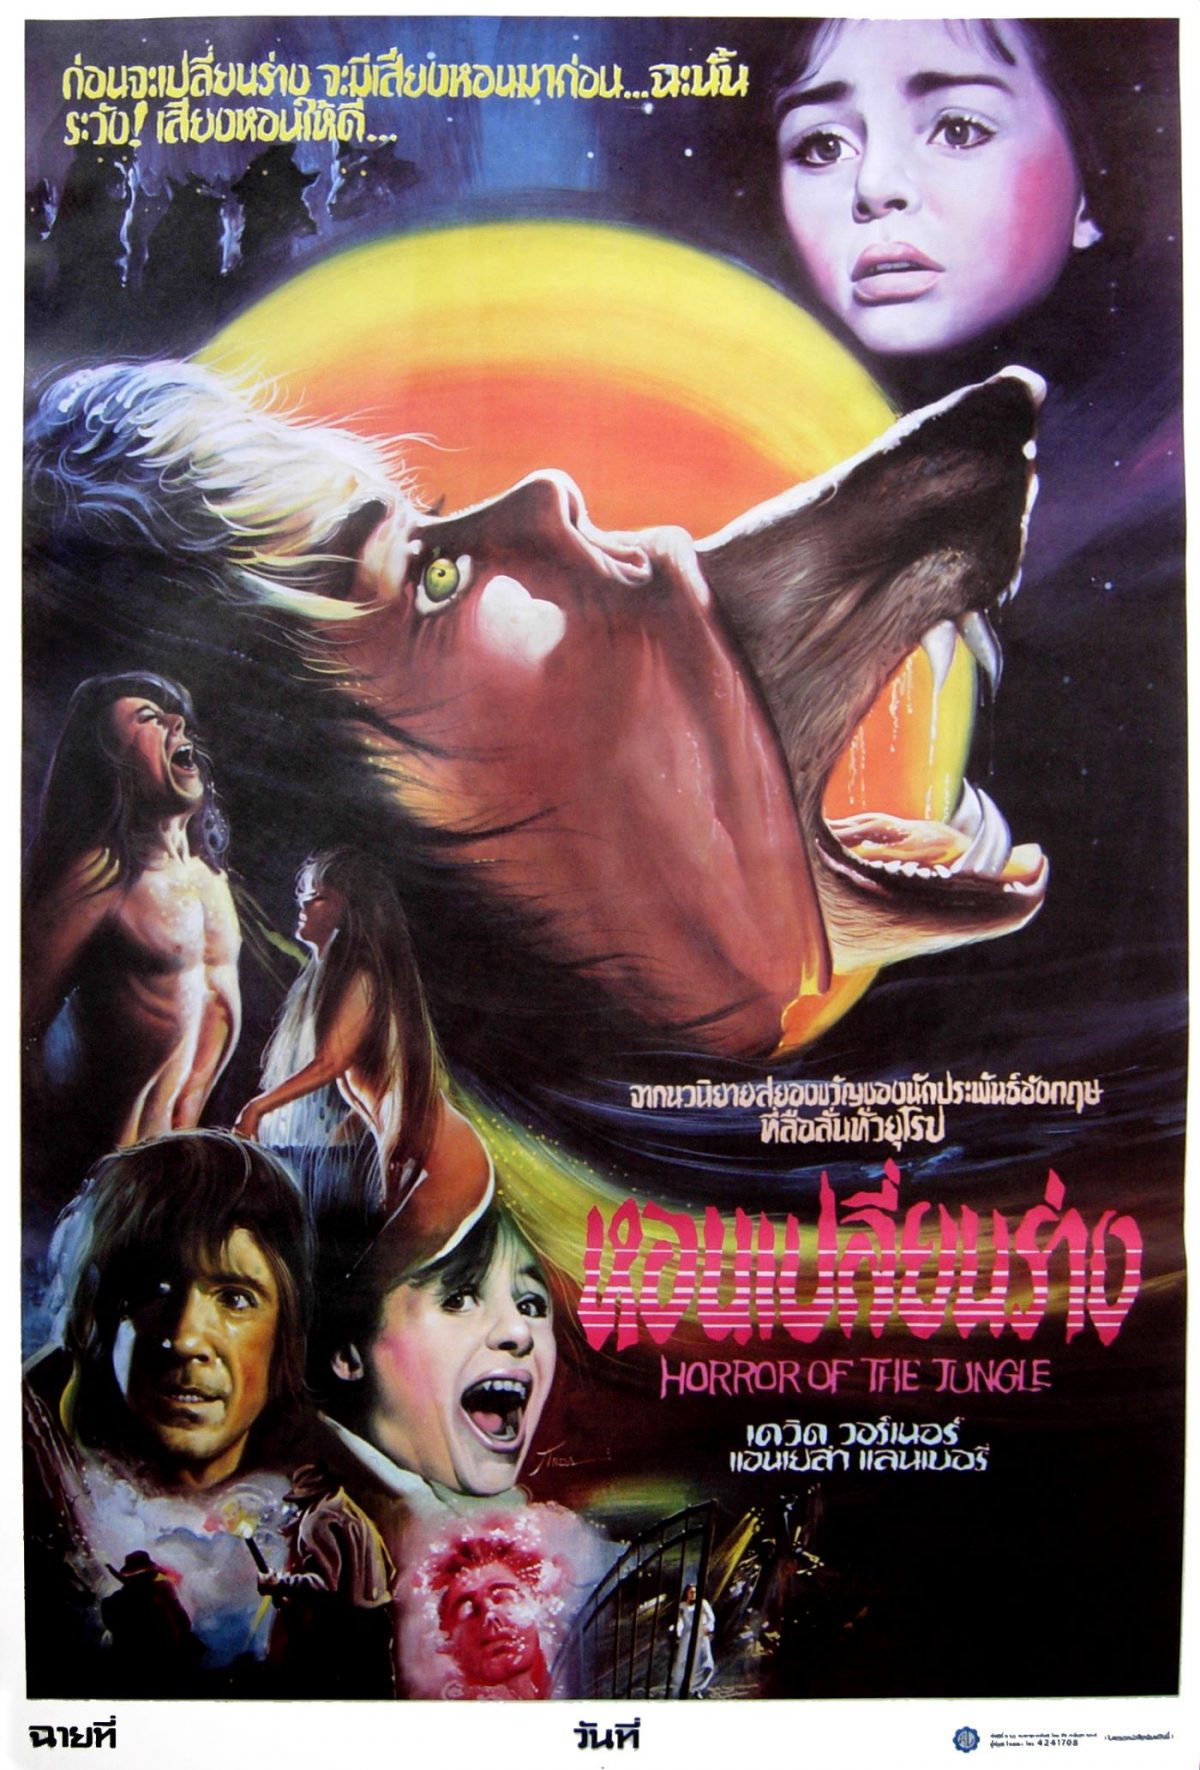 Thailand, movie posters, artwork, The Company of Wolves, Neil Jordan